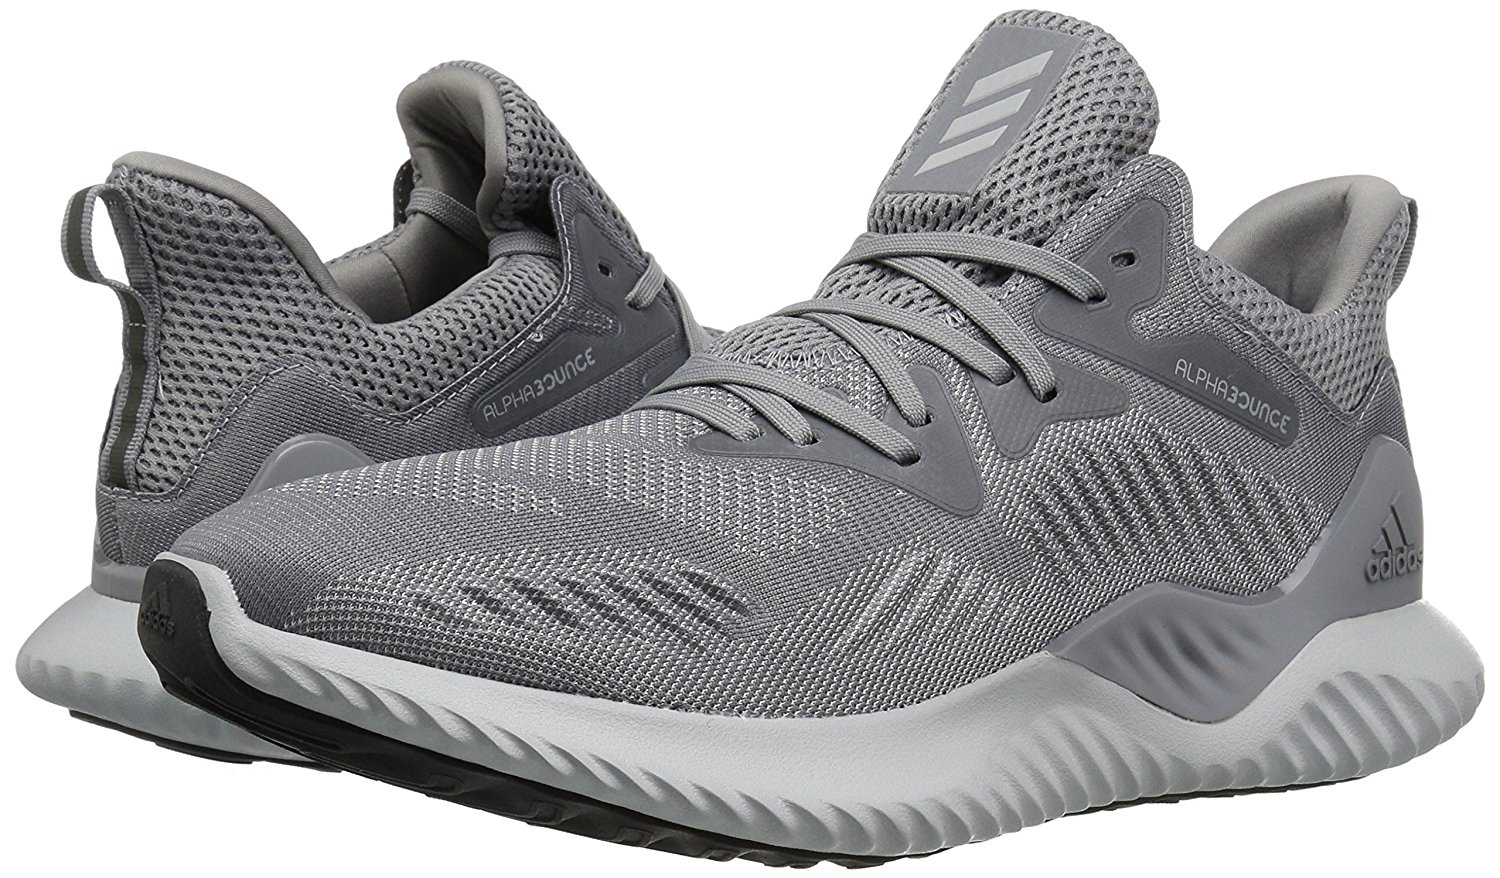 f716c2397 Adidas Alphabounce Beyond Tested for Performance in 2019